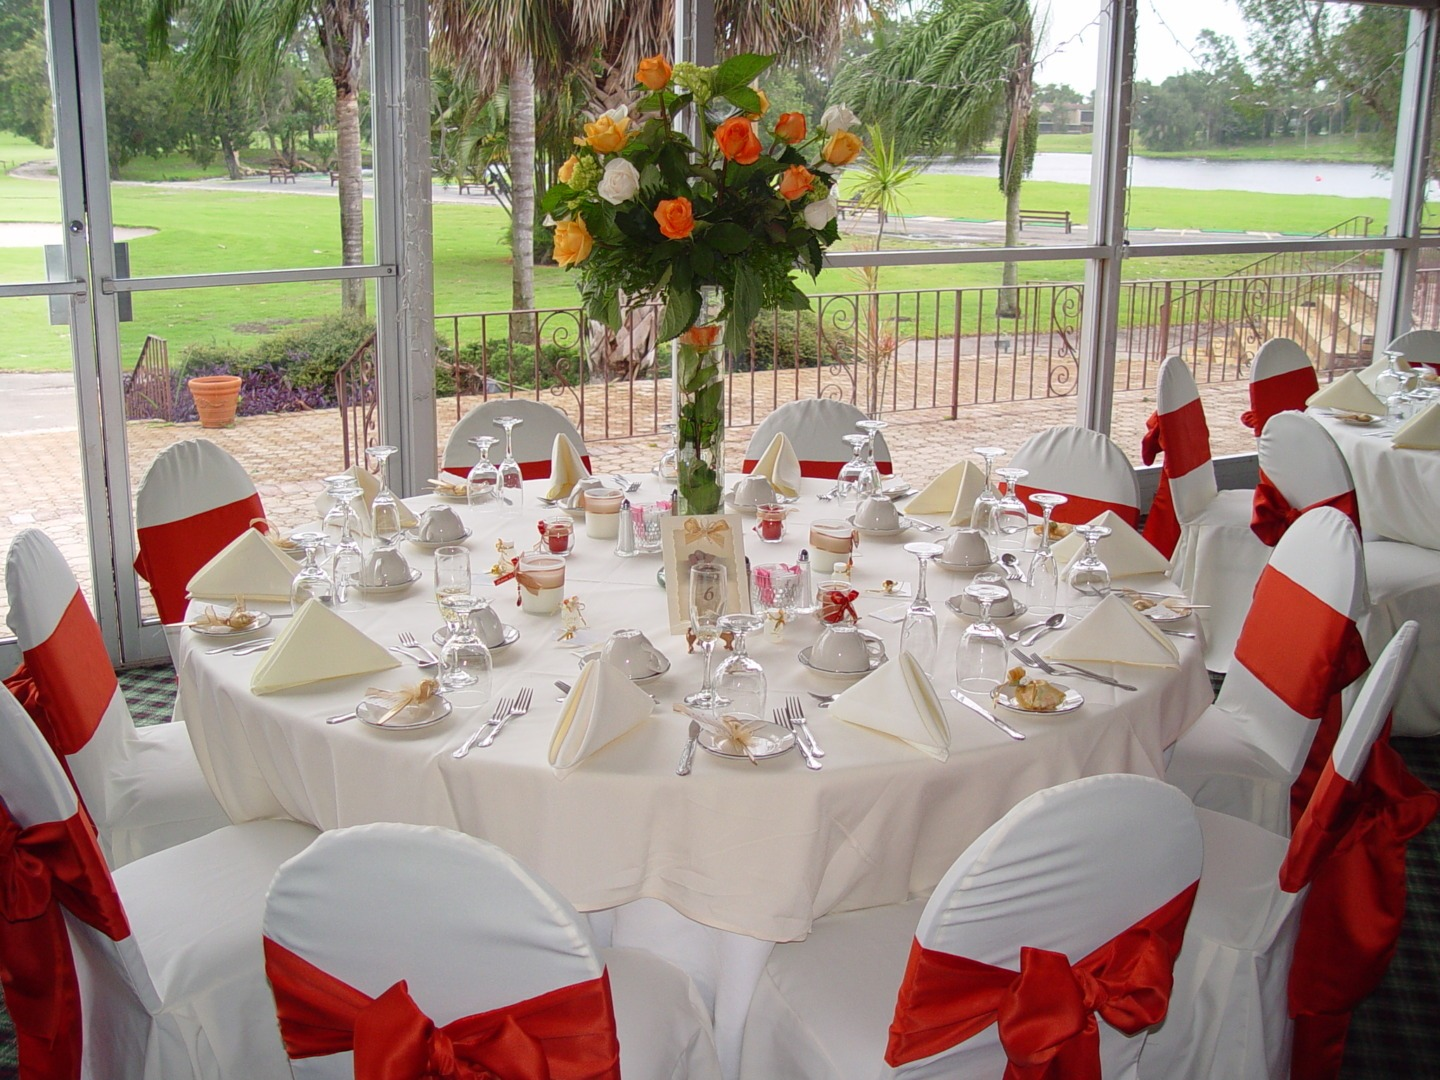 Room decor rental hire co ordination made easy for Wedding reception room decoration ideas